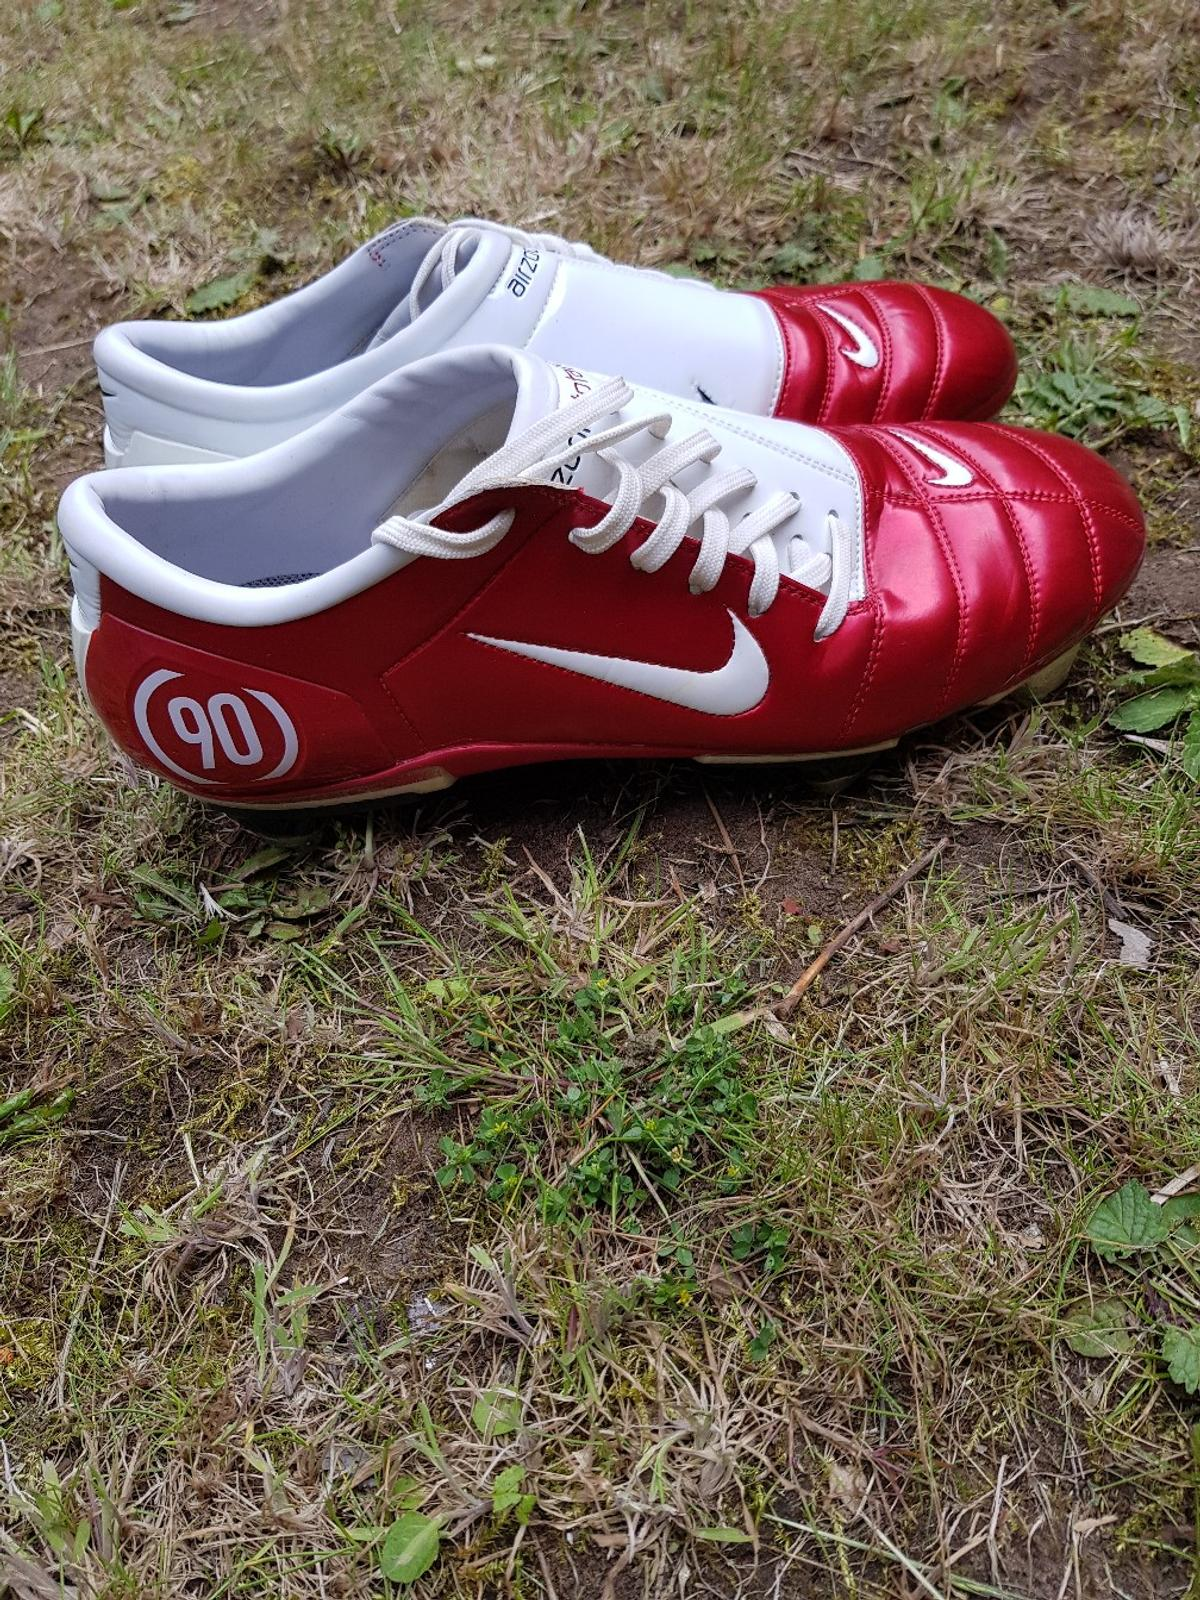 new style 0f409 bce91 Nike Total 90 Air Zoom III Football Boots in Selby for ...